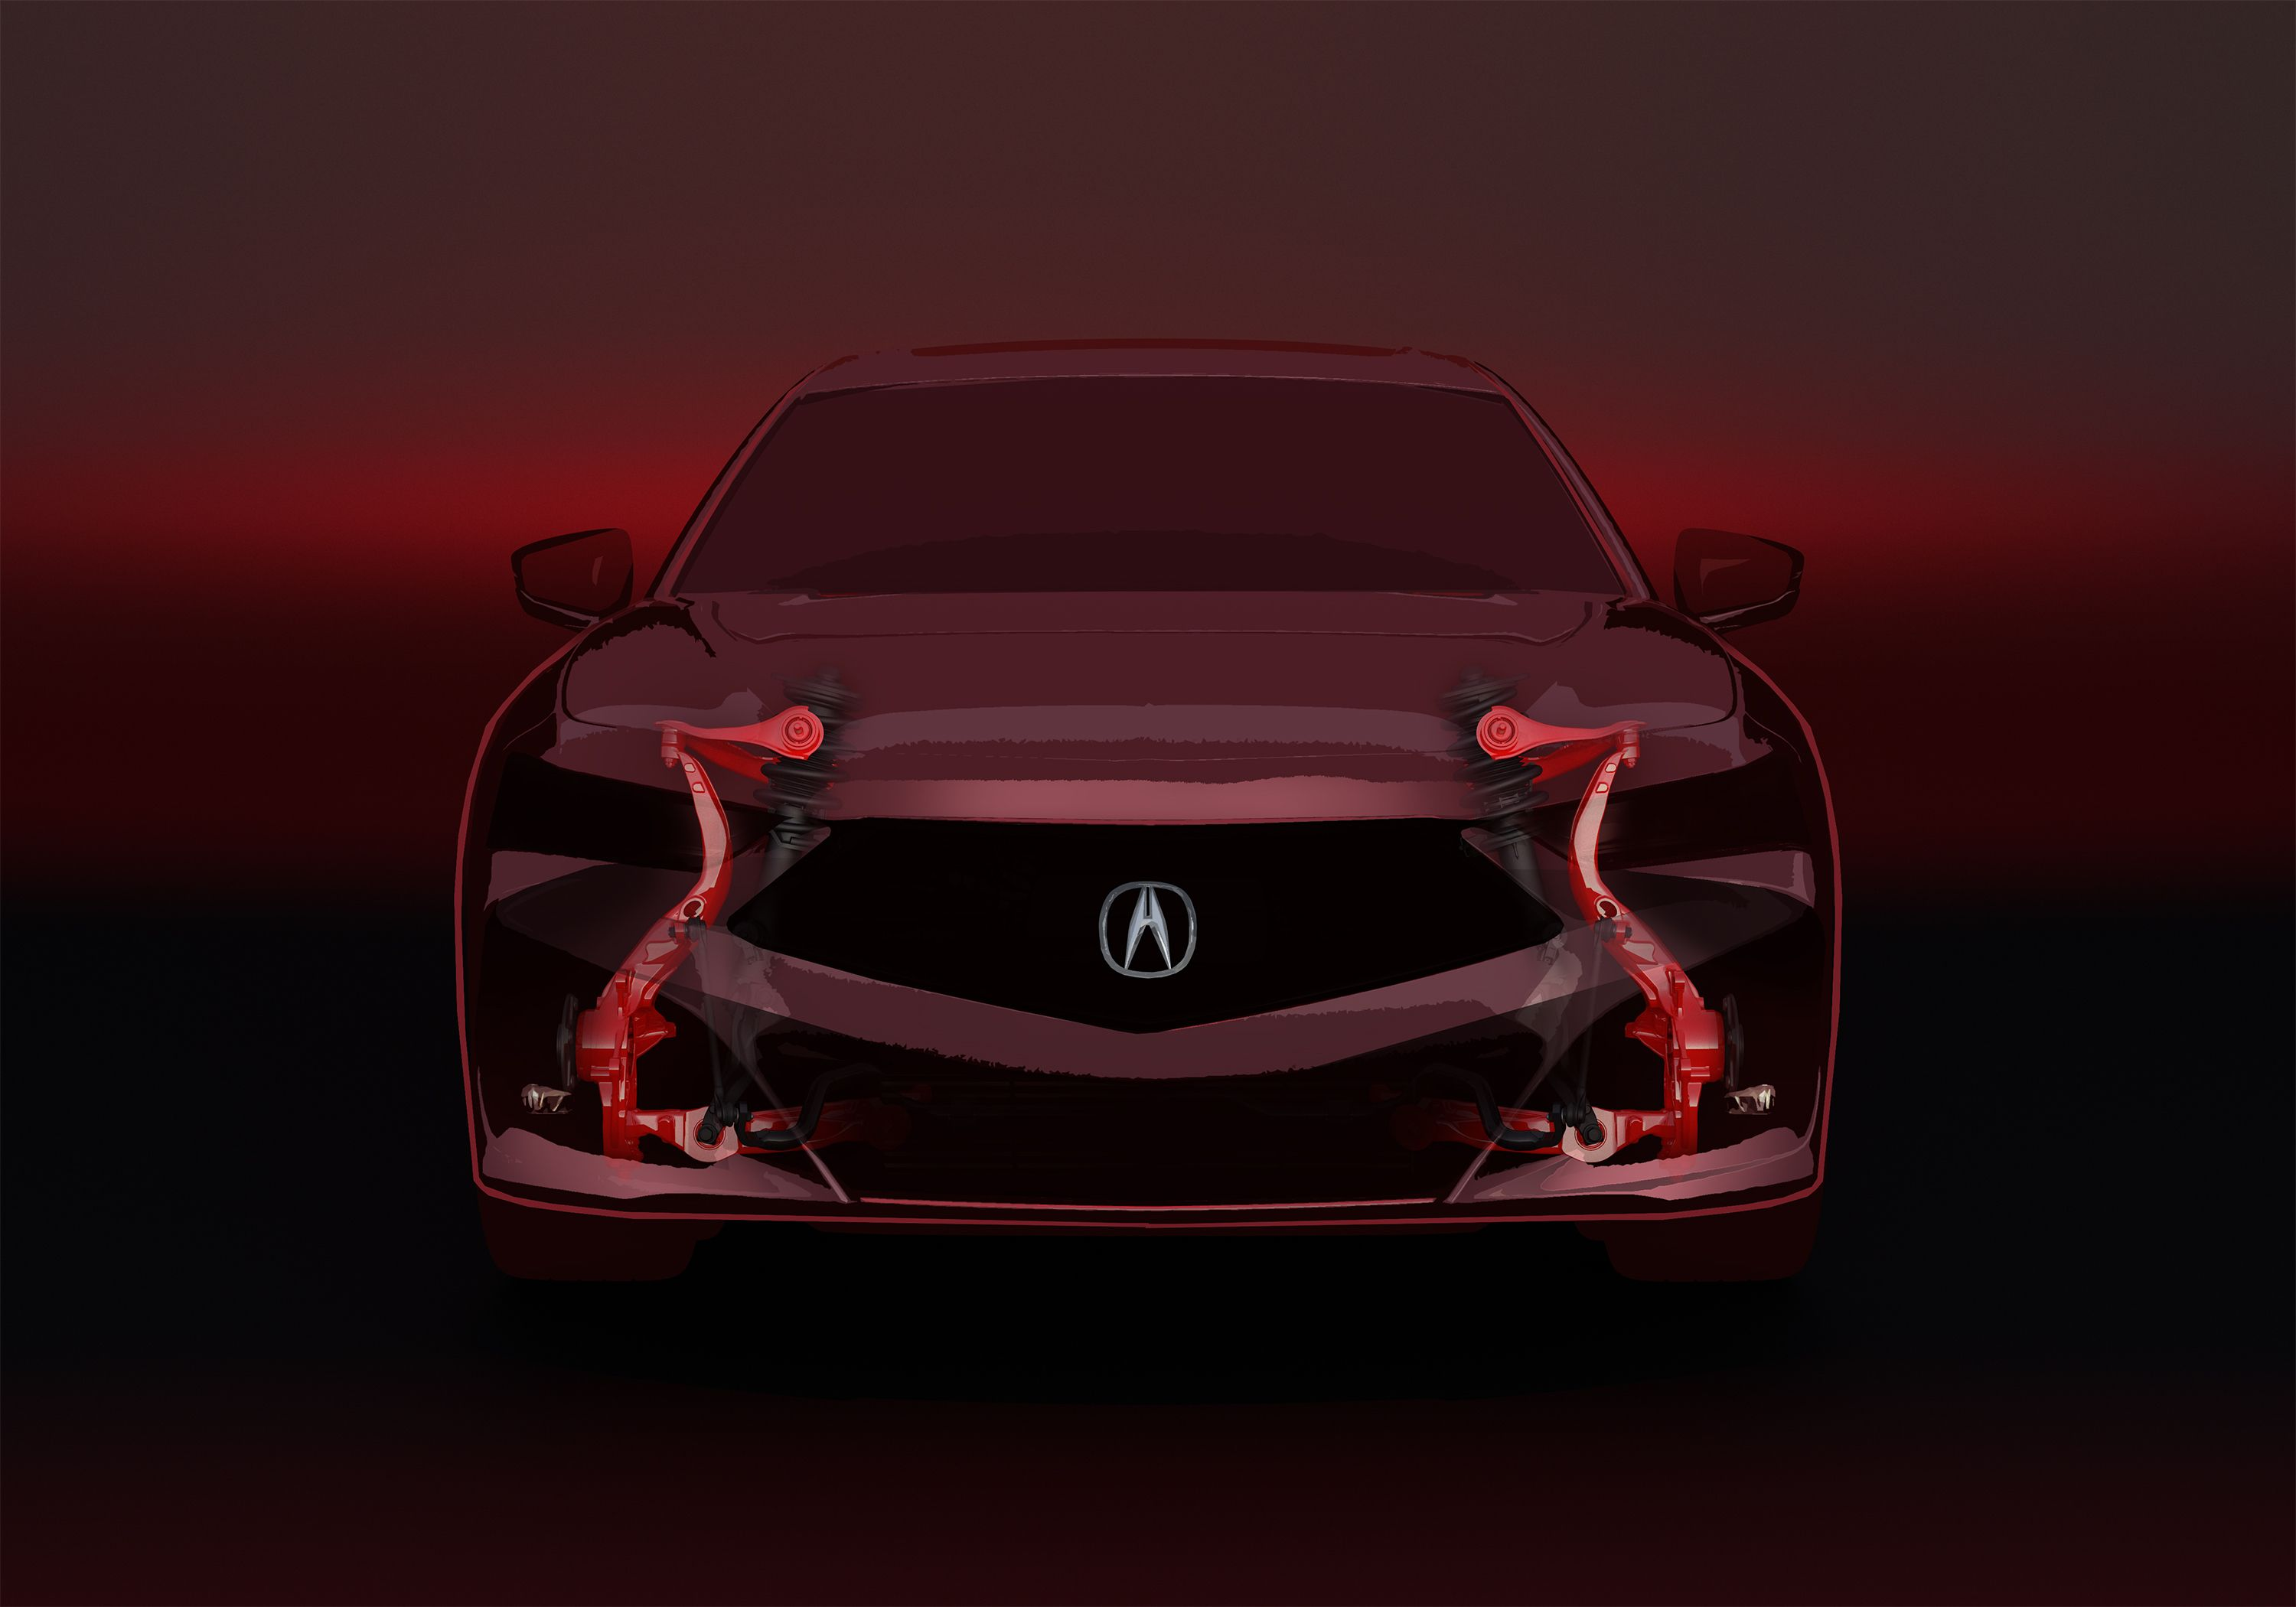 Tlx suspension teaser image final 1590498015